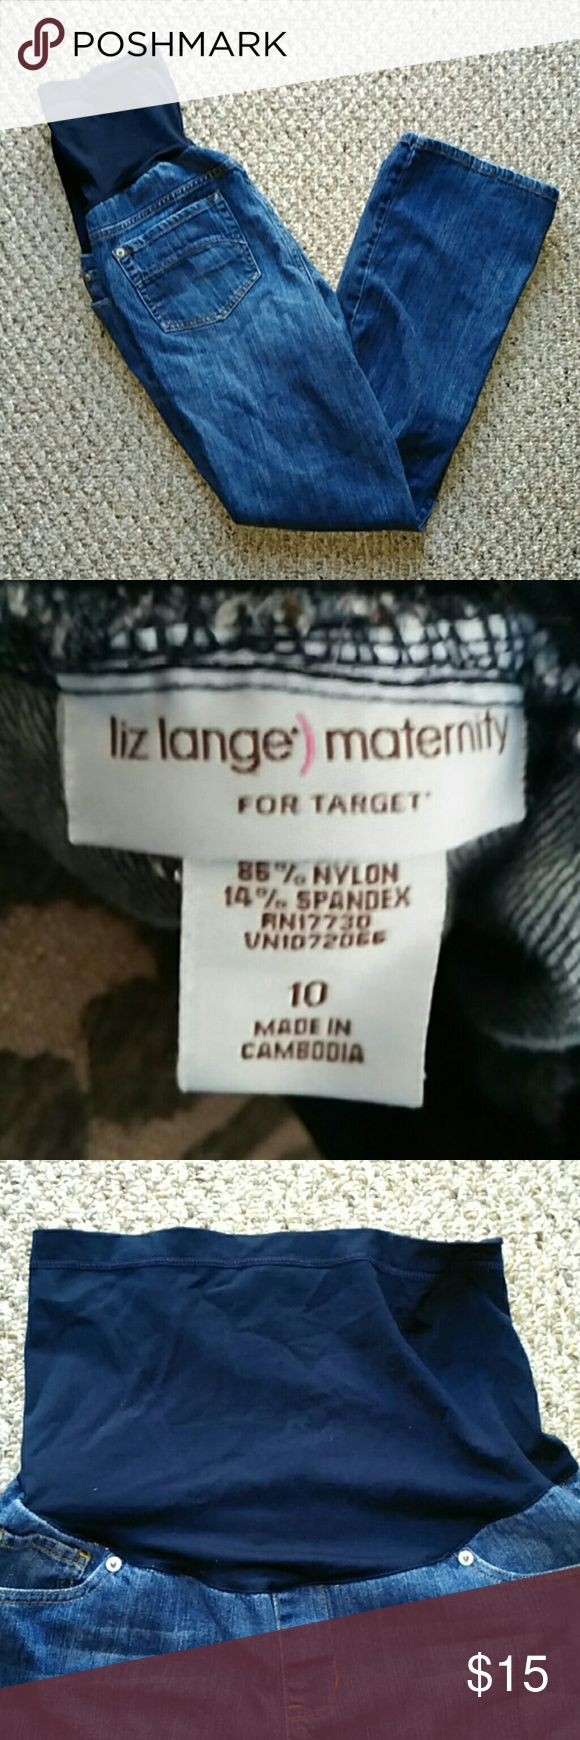 """Liz Lange for Target Maternity Jeans size 10 Liz Lange for Target Maternity jeans. Size 10. Elastic belly band at the top. Bootcut. No rips or stains. Inseam is approximately just under 28.5"""" Liz Lange for Target Jeans Boot Cut"""